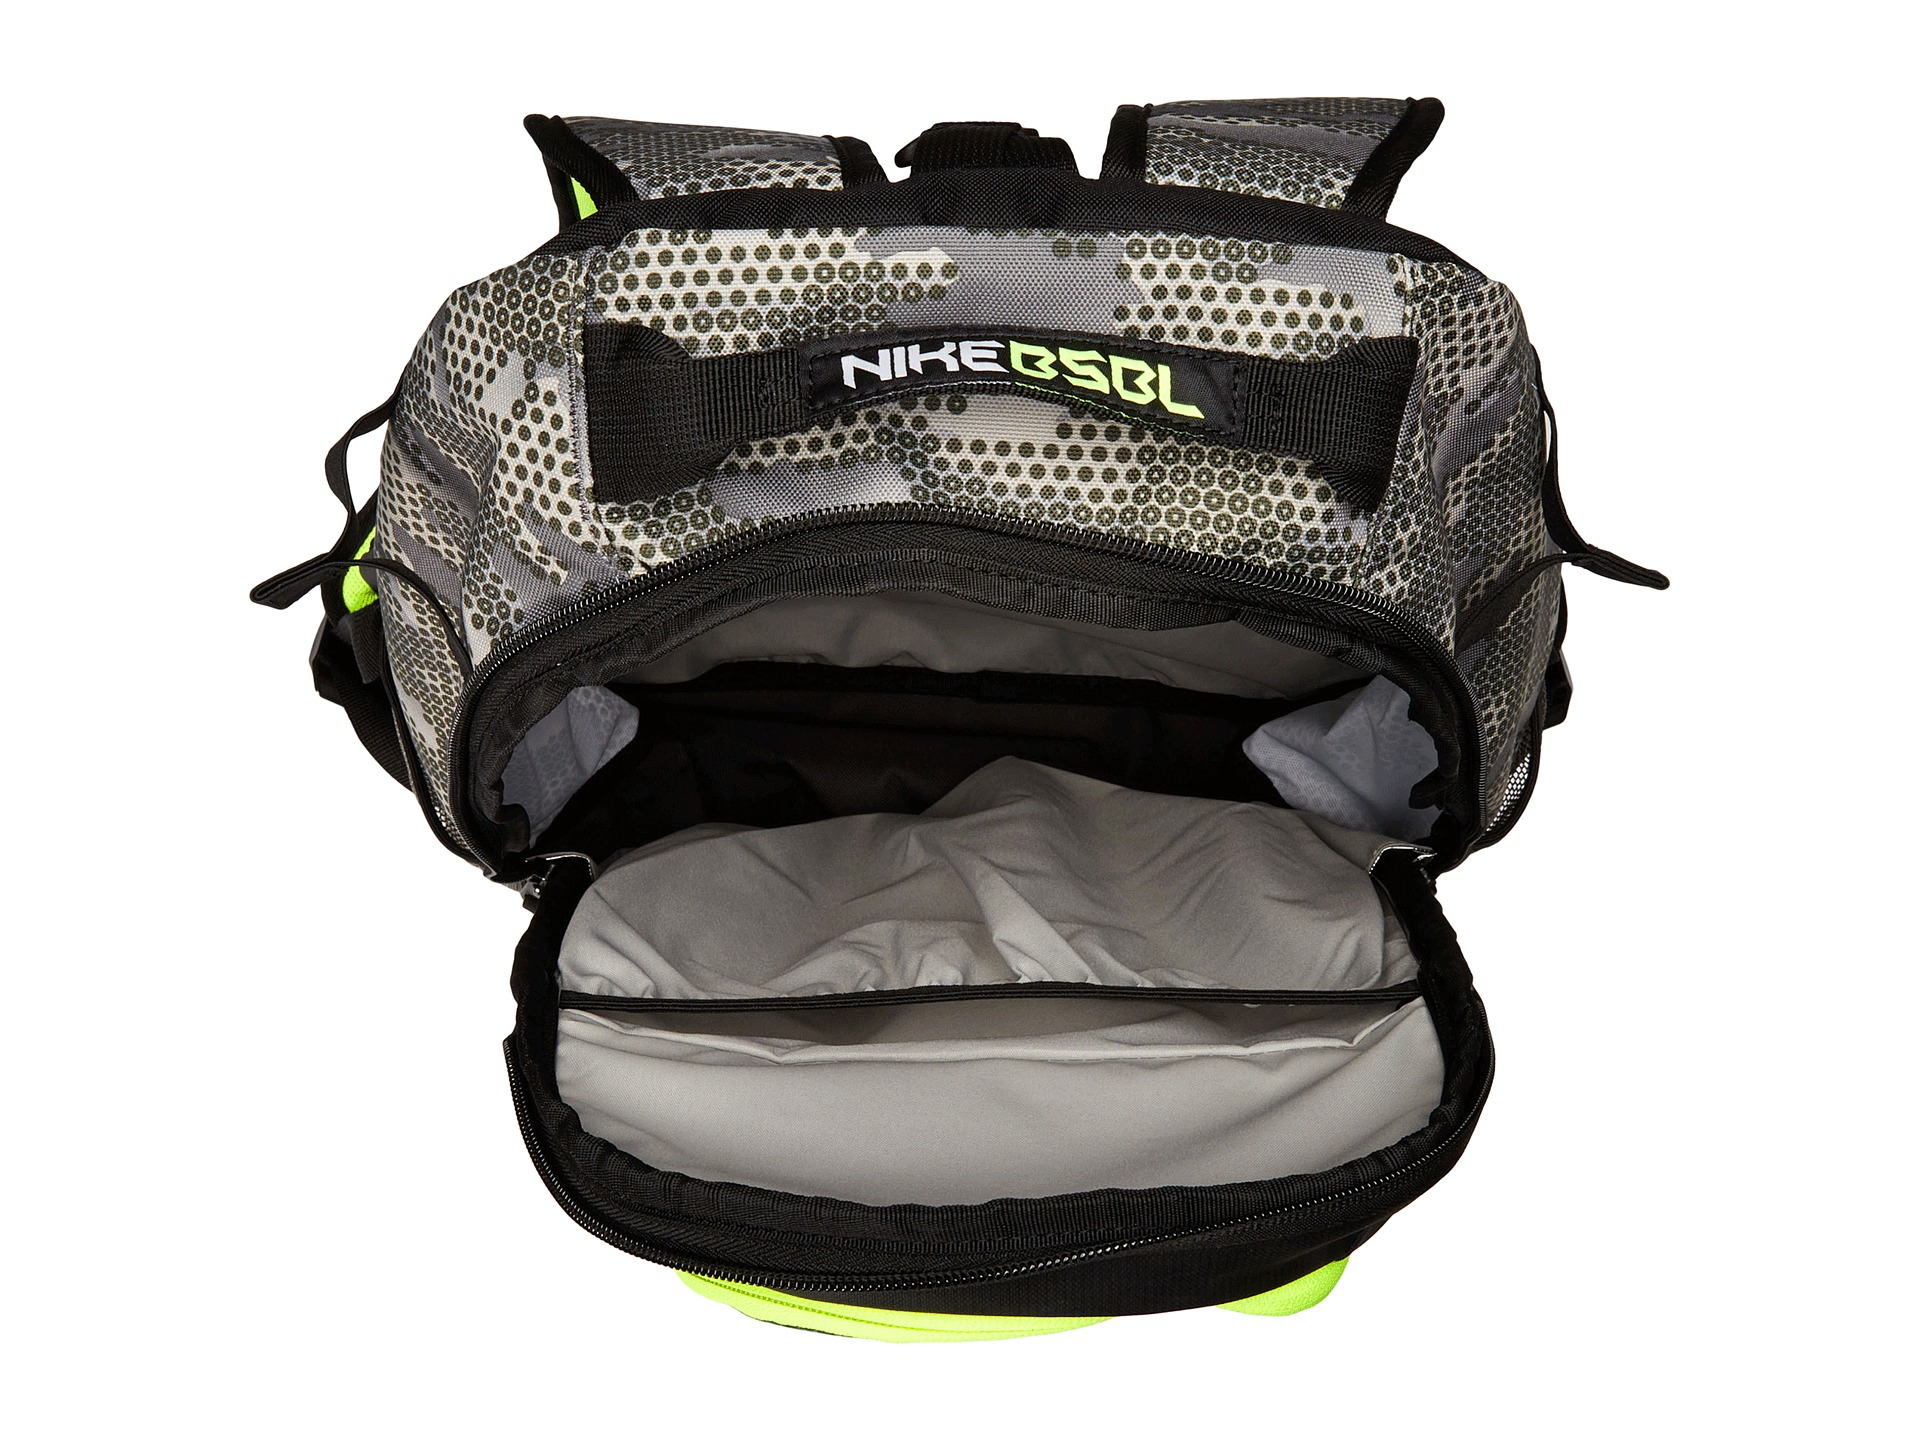 Lyst - Nike Vapor Select Bat Backpack Graphic in Gray for Men c48ad43105735